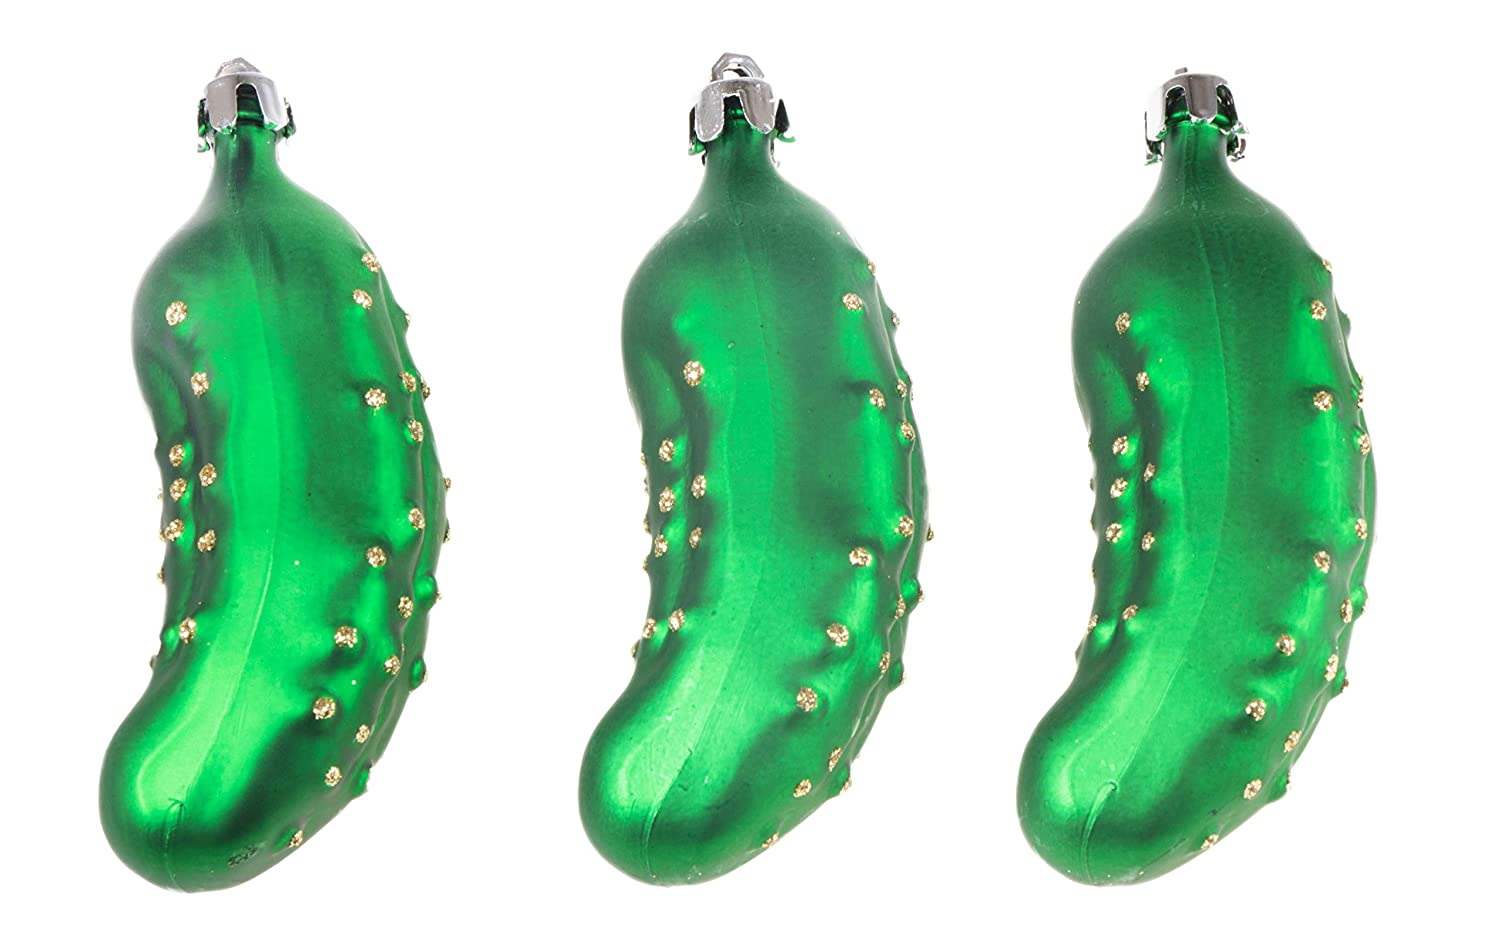 Christmas Tree Pickle Ornament.Clever Creations Shatterproof Christmas Tree Ornaments Green Festive Christmas Decor Christmas Pickles 3 Piece Set Perfect For Christmas Trees